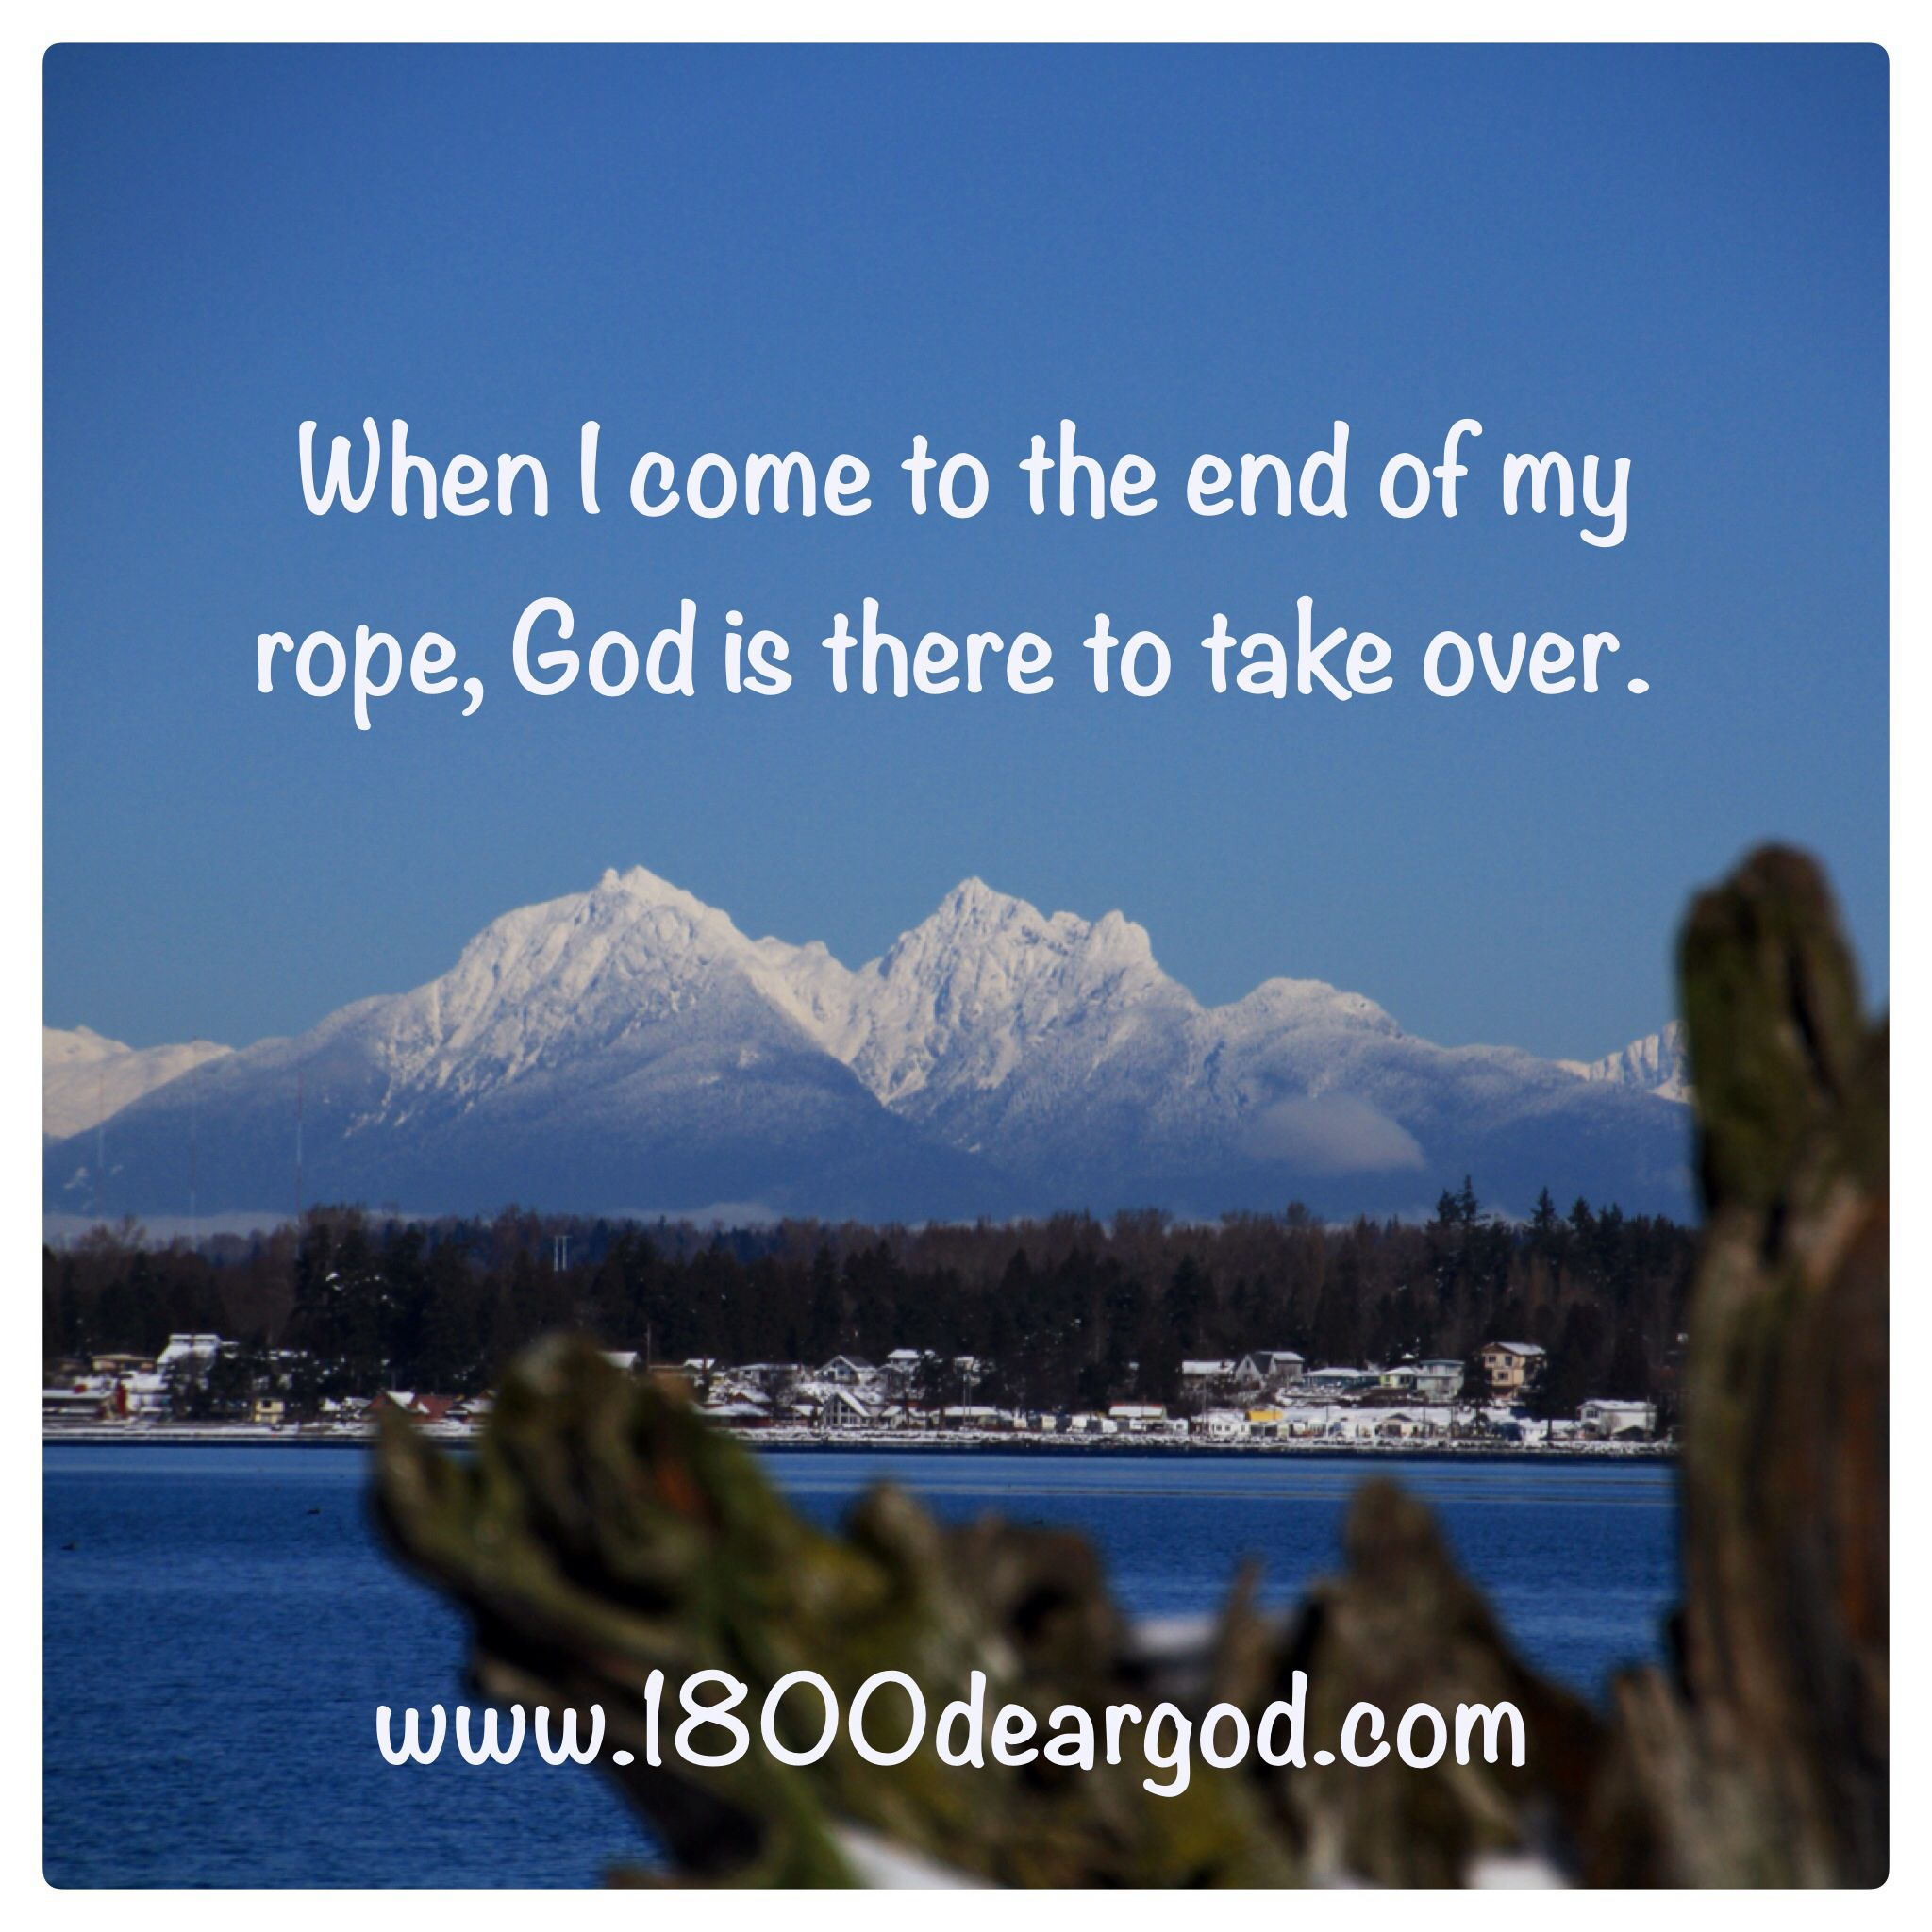 Bible Verses Quotes About Life When I Come To The End Of My Rope God Is There To Take Over